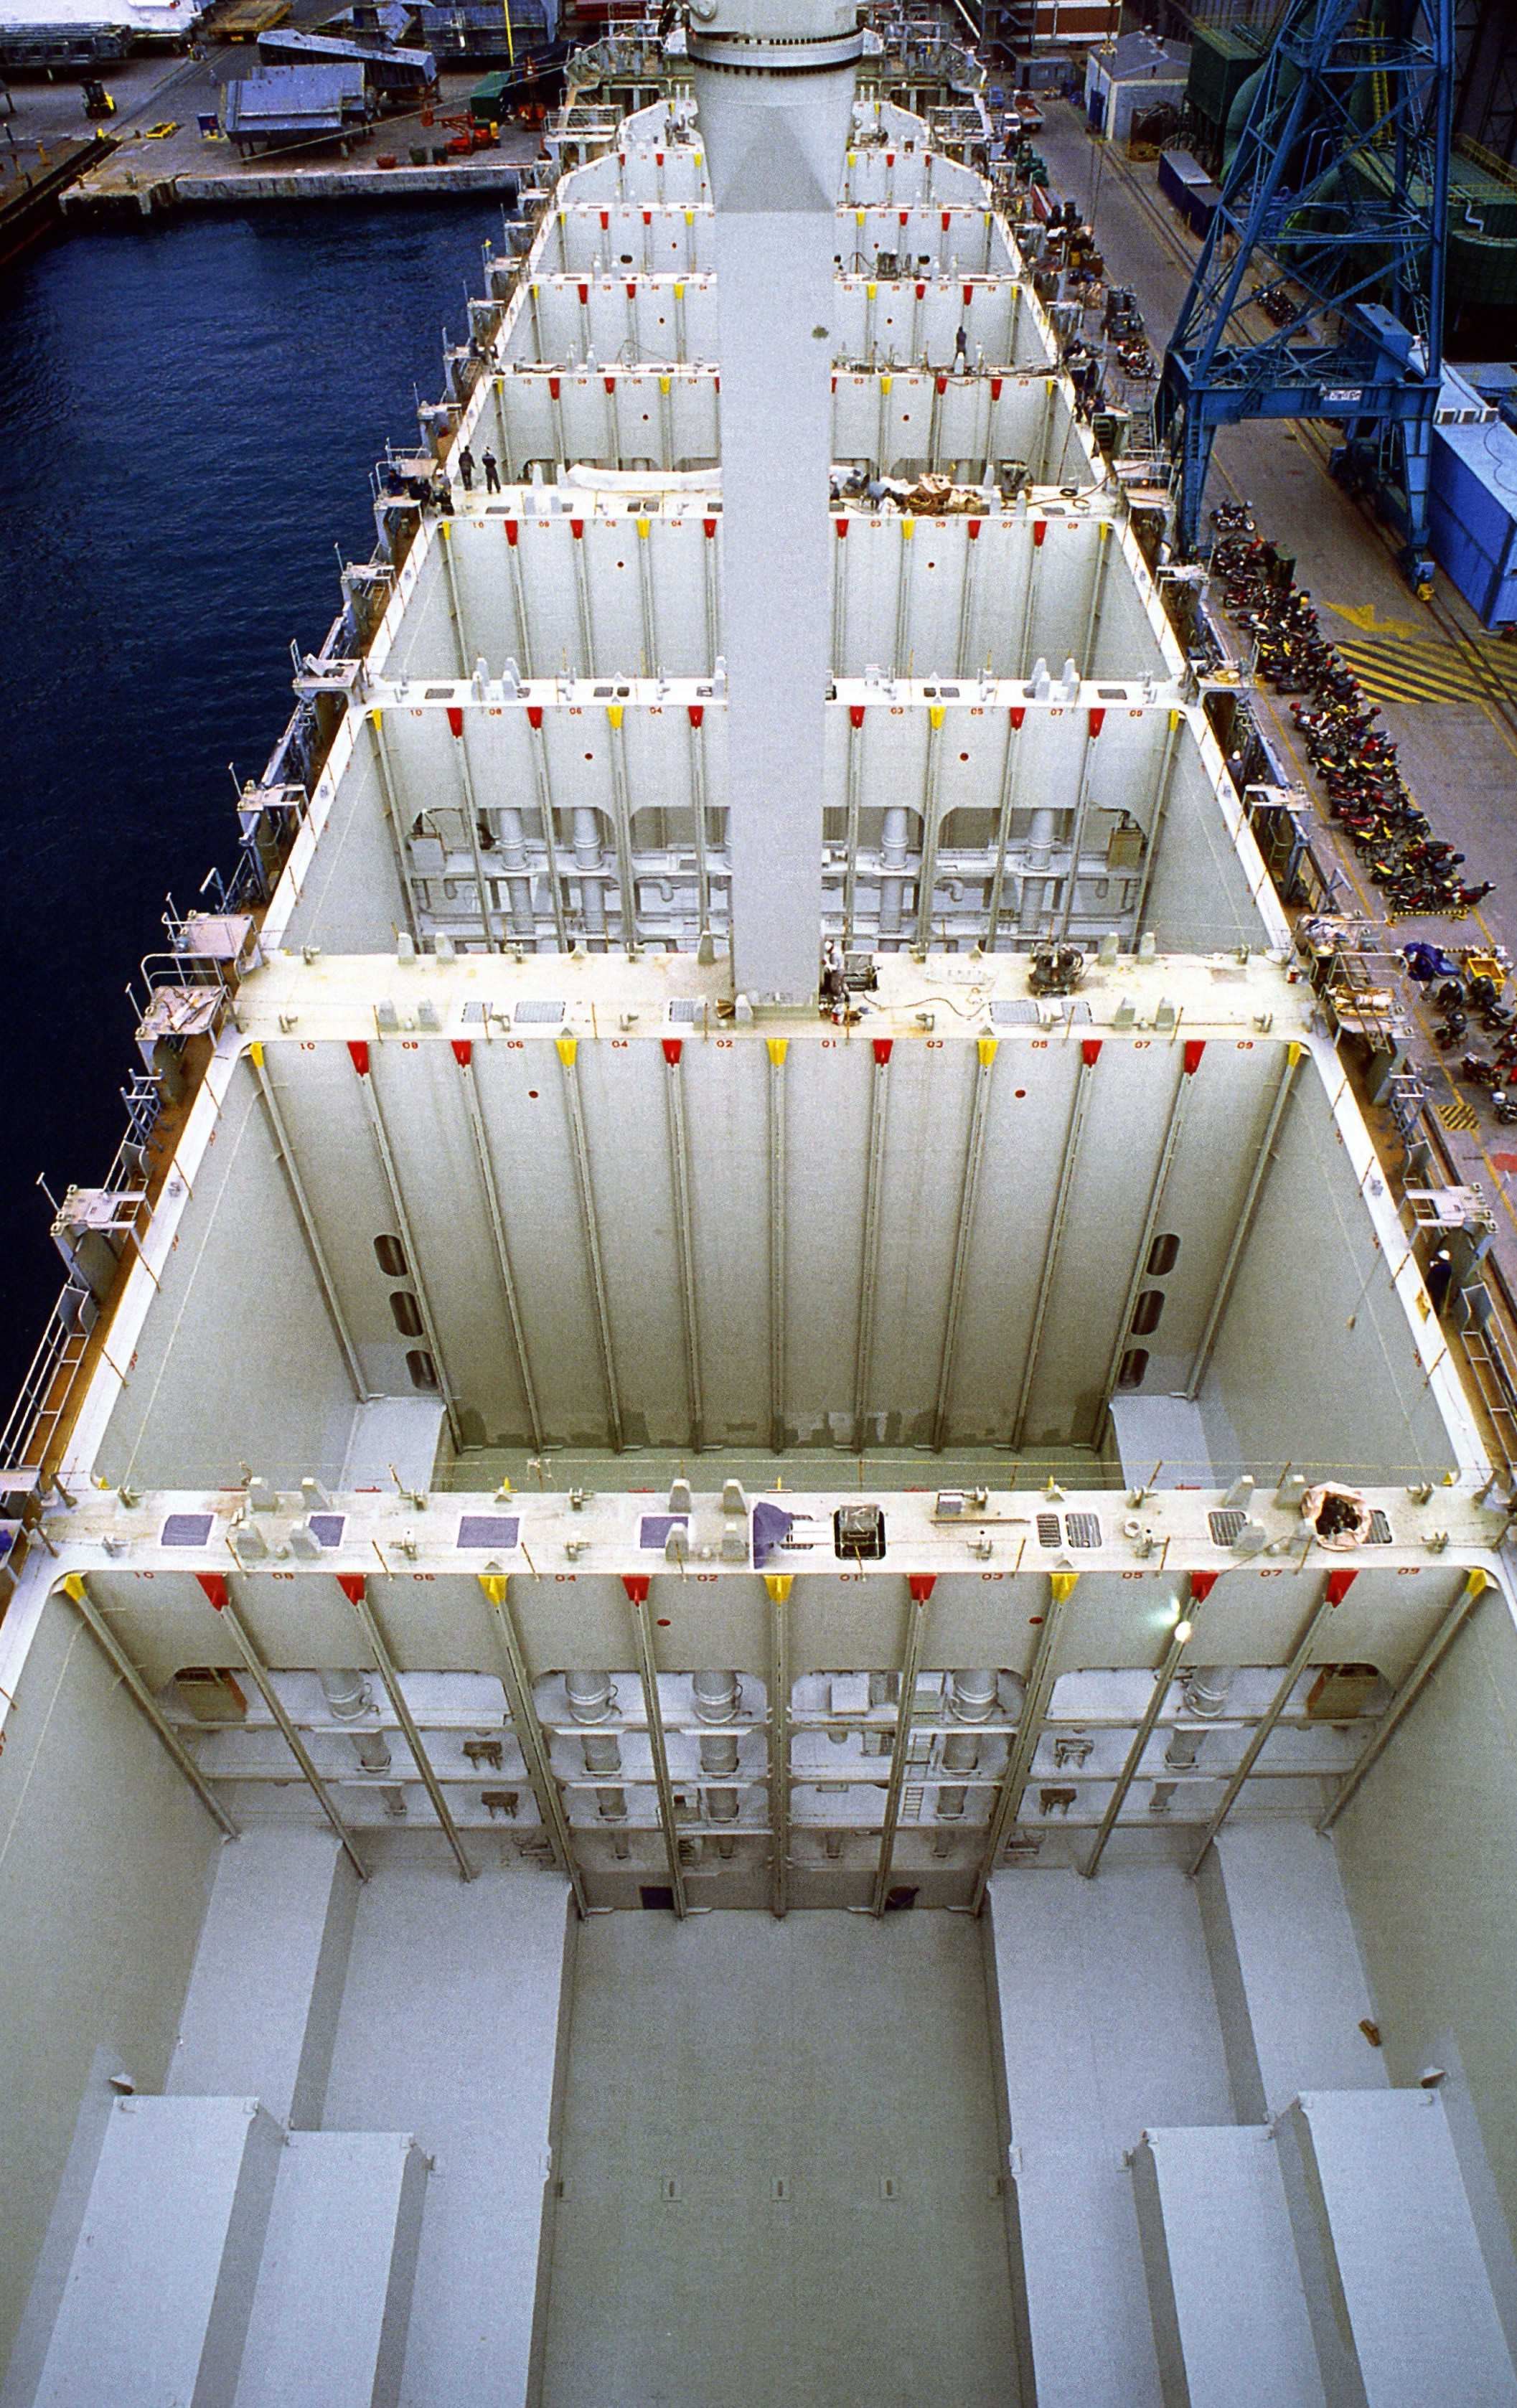 Cargo Ship Engine Room: Maersk Mc-Kinney Moller In Bremerhaven. The Length Is 399